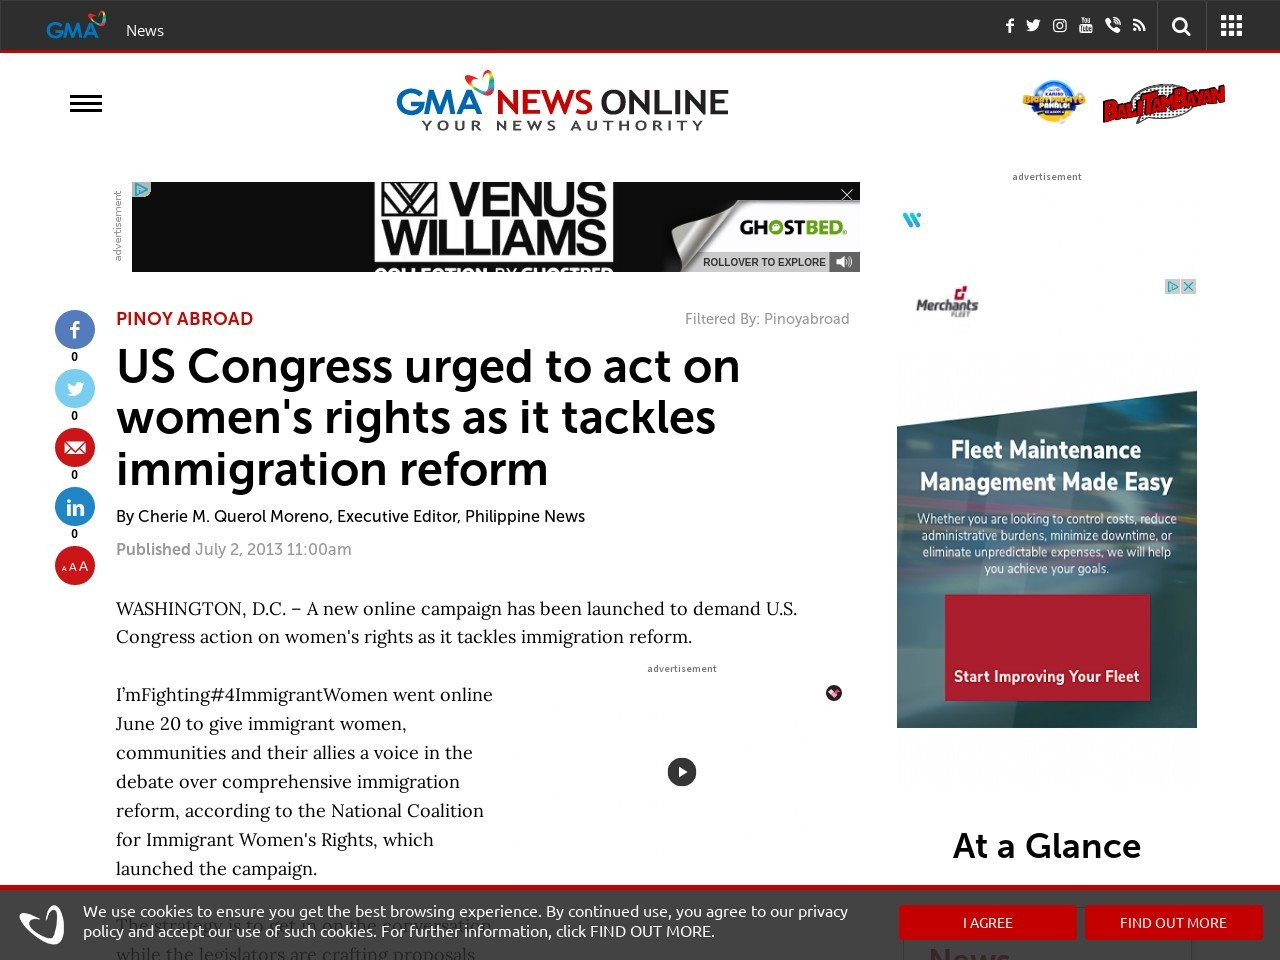 US Congress urged to act on women's rights as it tackles immigration reform